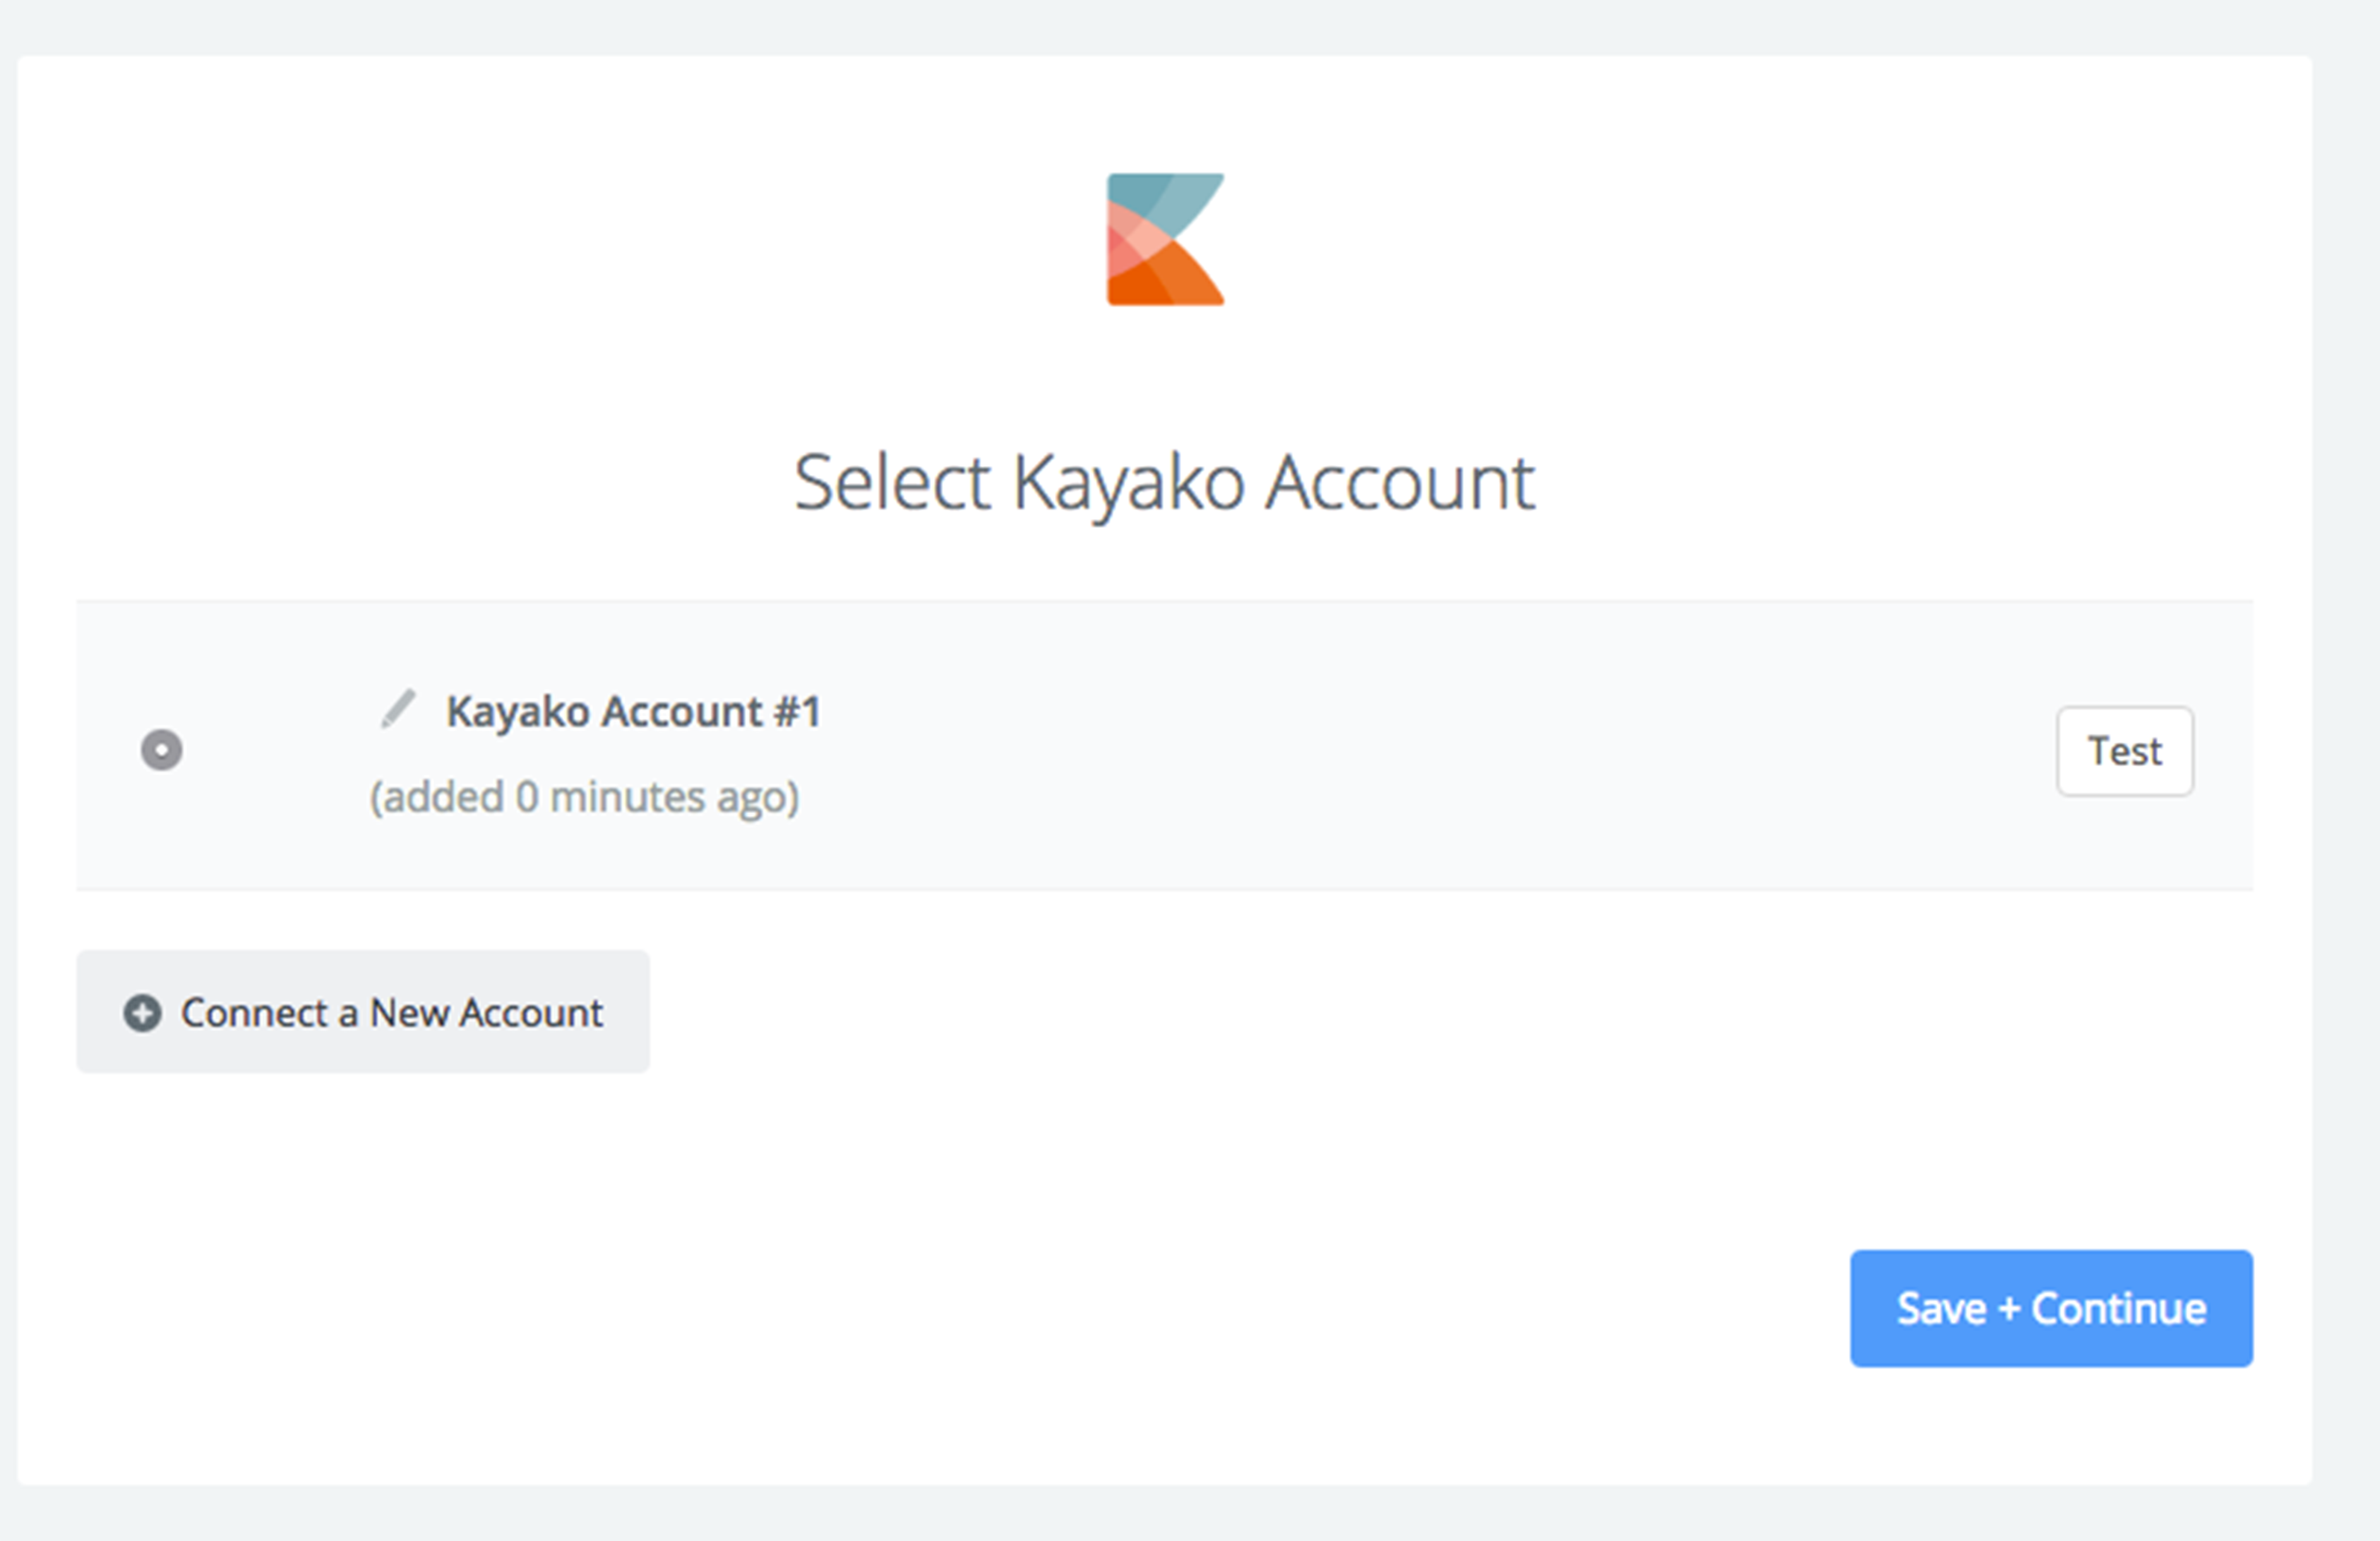 Kayako connection successfull